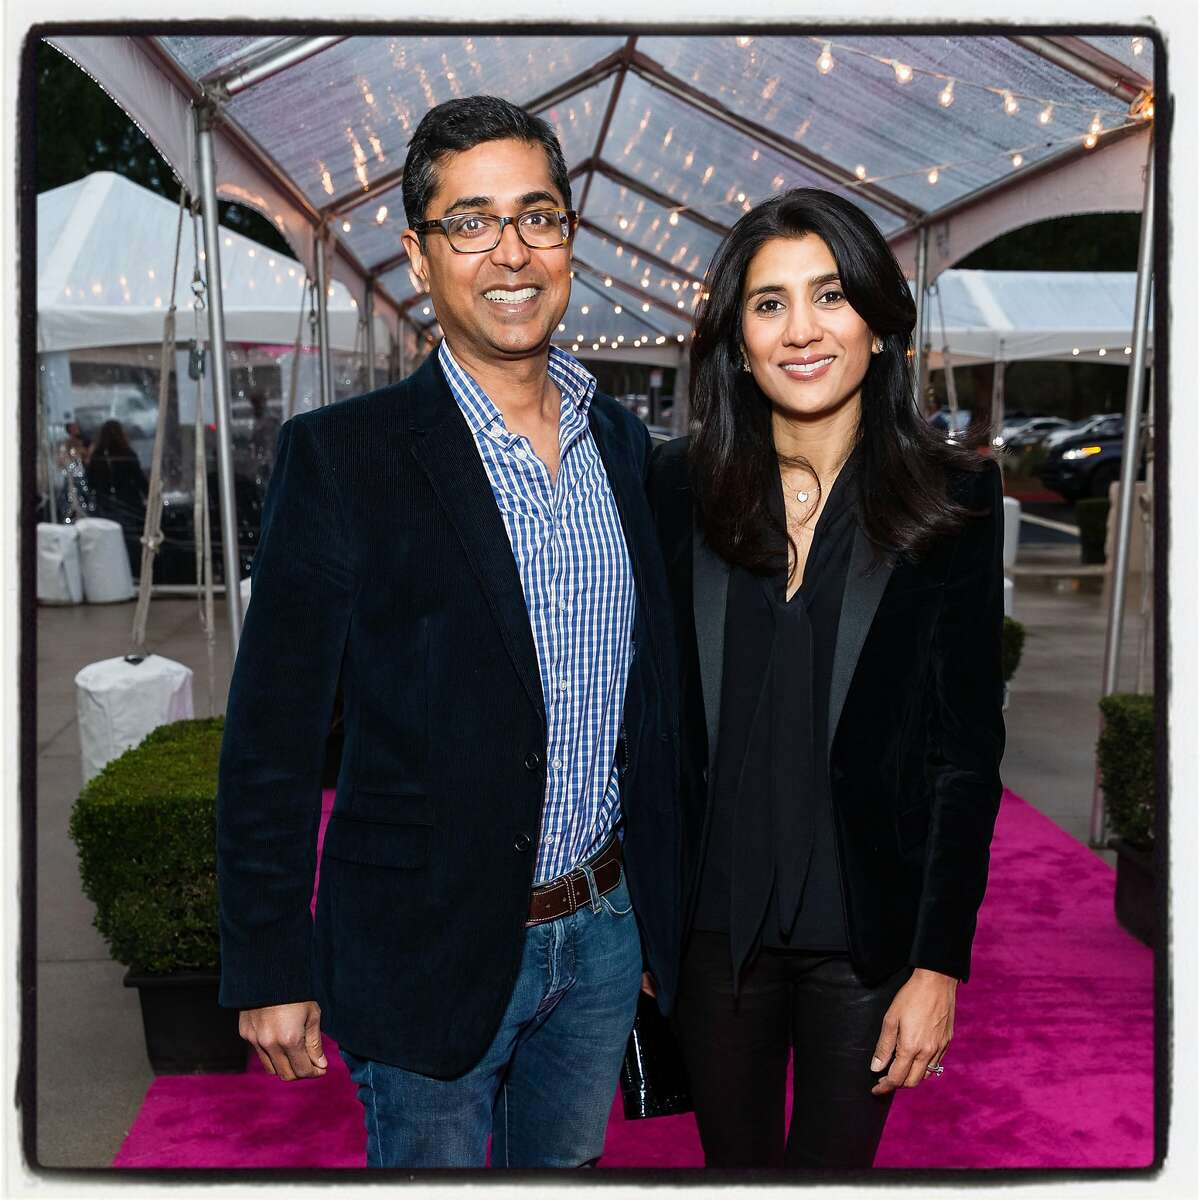 Ravin and Alka Agrawal at Under One Umbrella fundraiser. Feb. 27, 2019.